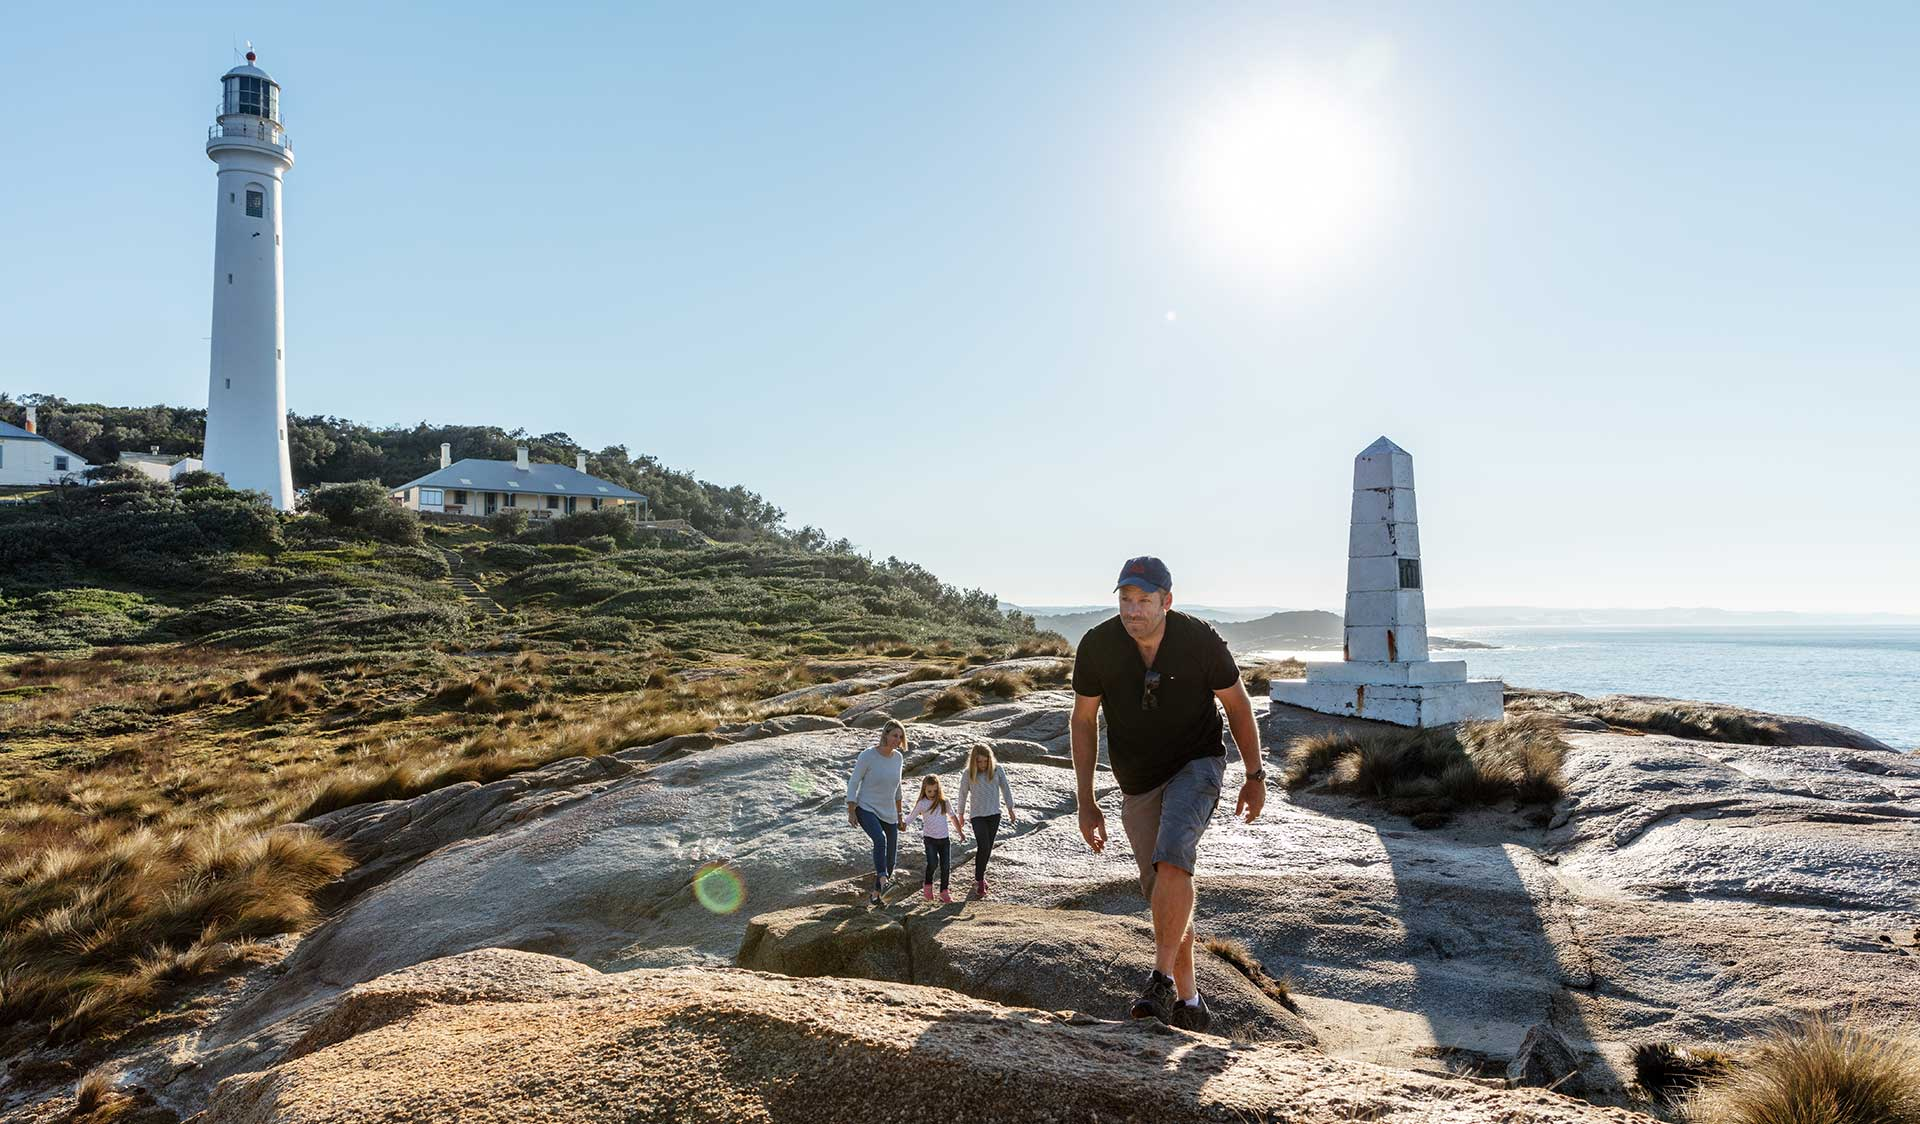 A father leads his family across the rocks in front of the Point Hicks Lighthouse and cottage.